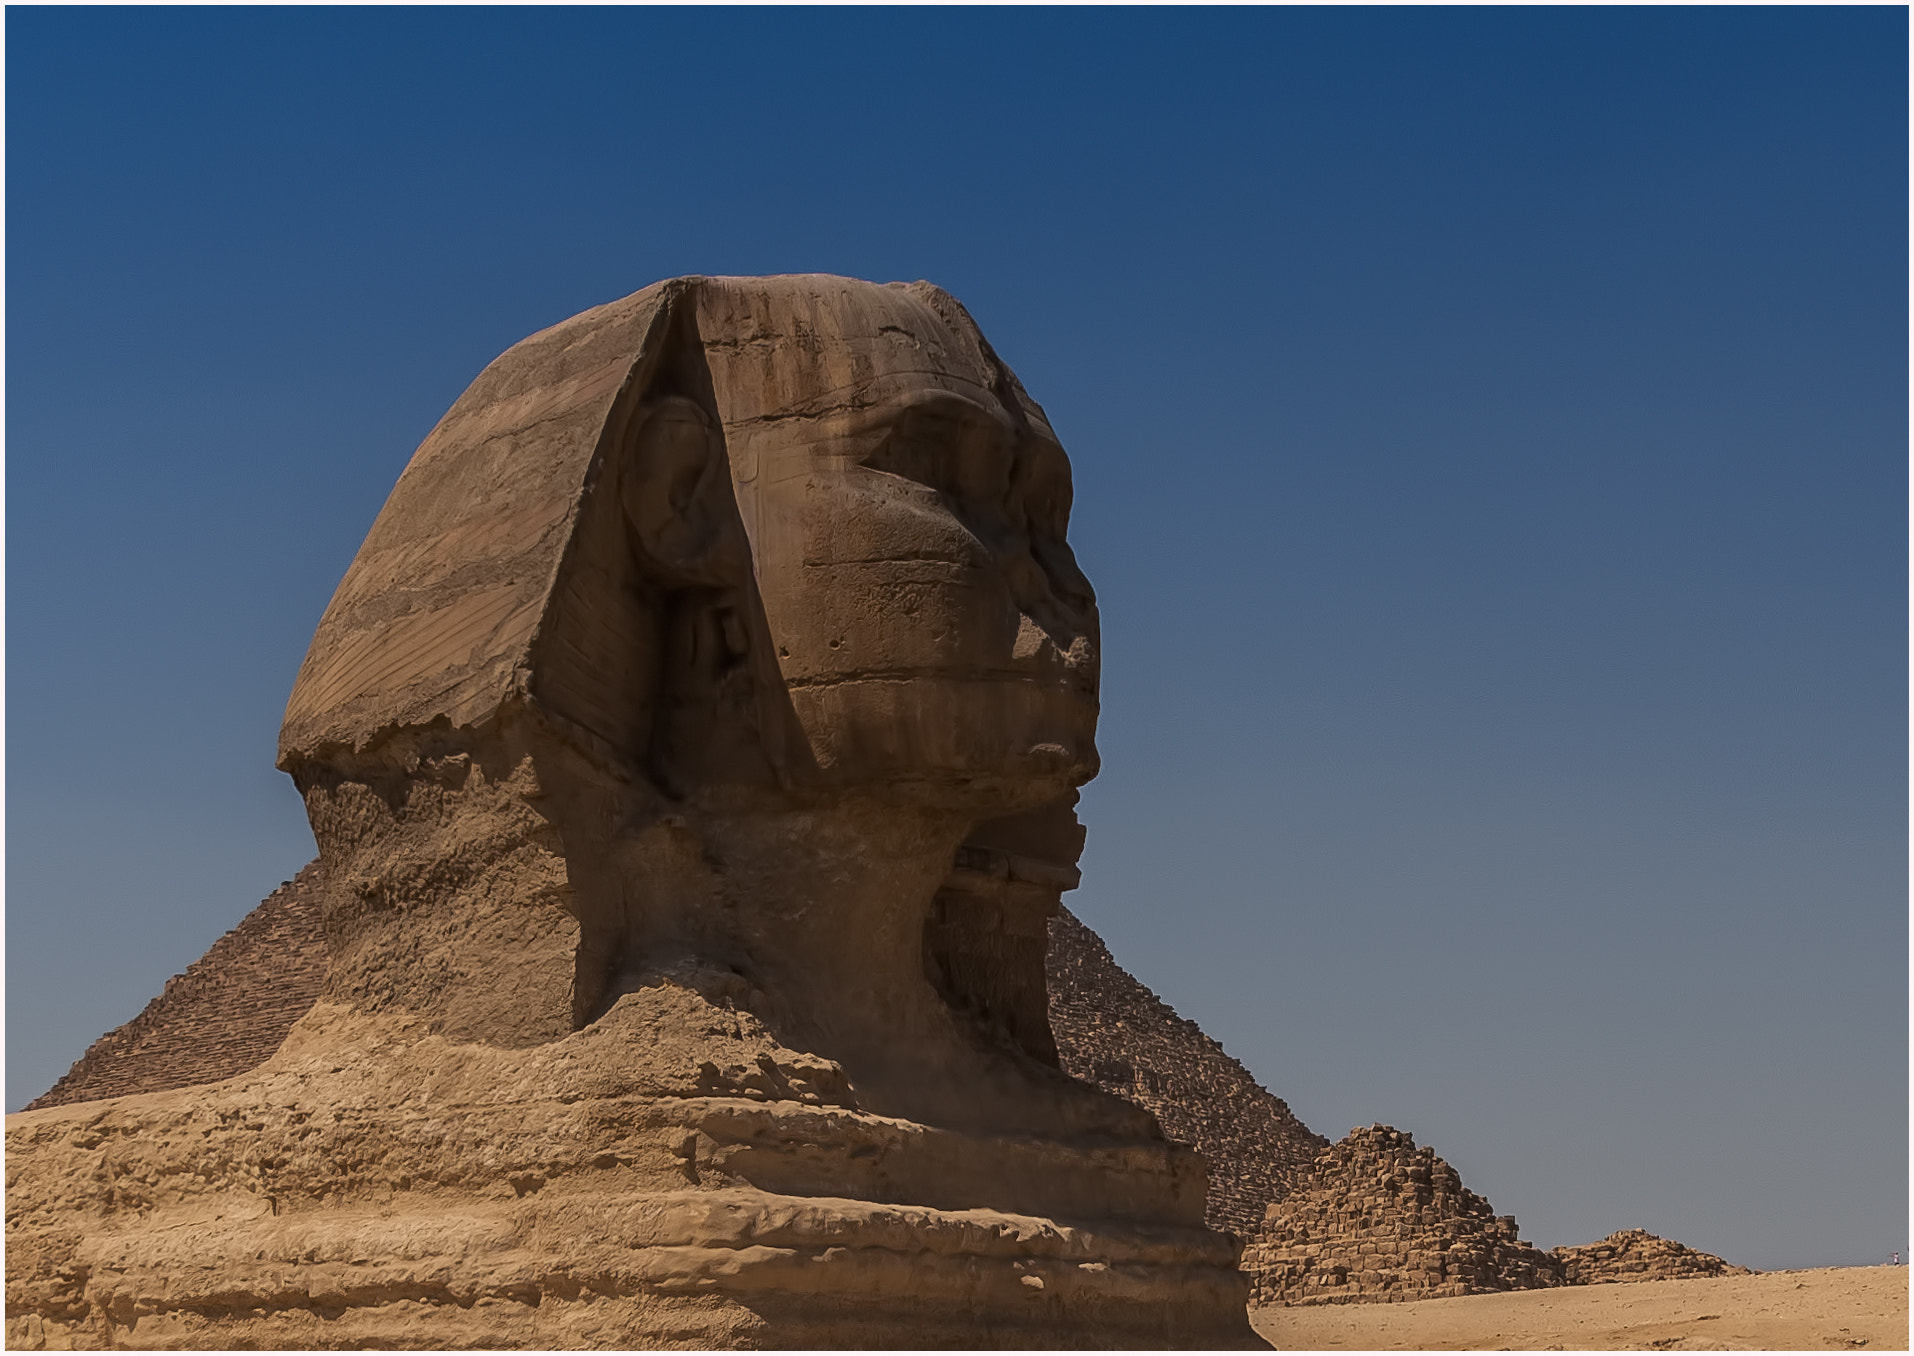 Photograph The Great sphinx Of Giza by Jamie Hyde on 500px